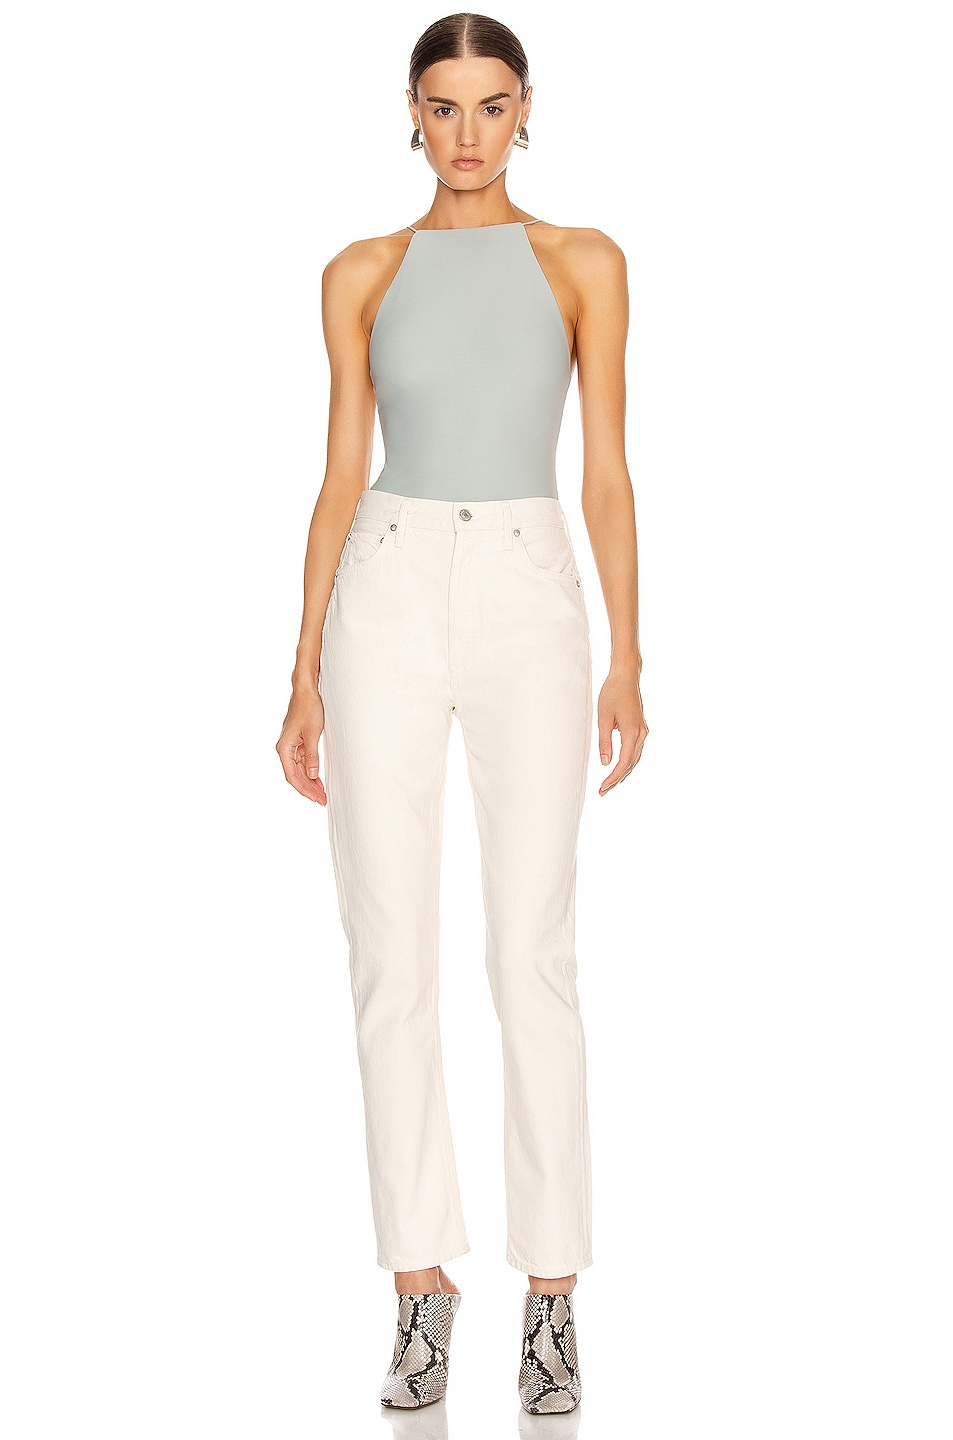 Image 5 of ALIX NYC Dyer Bodysuit in Mist